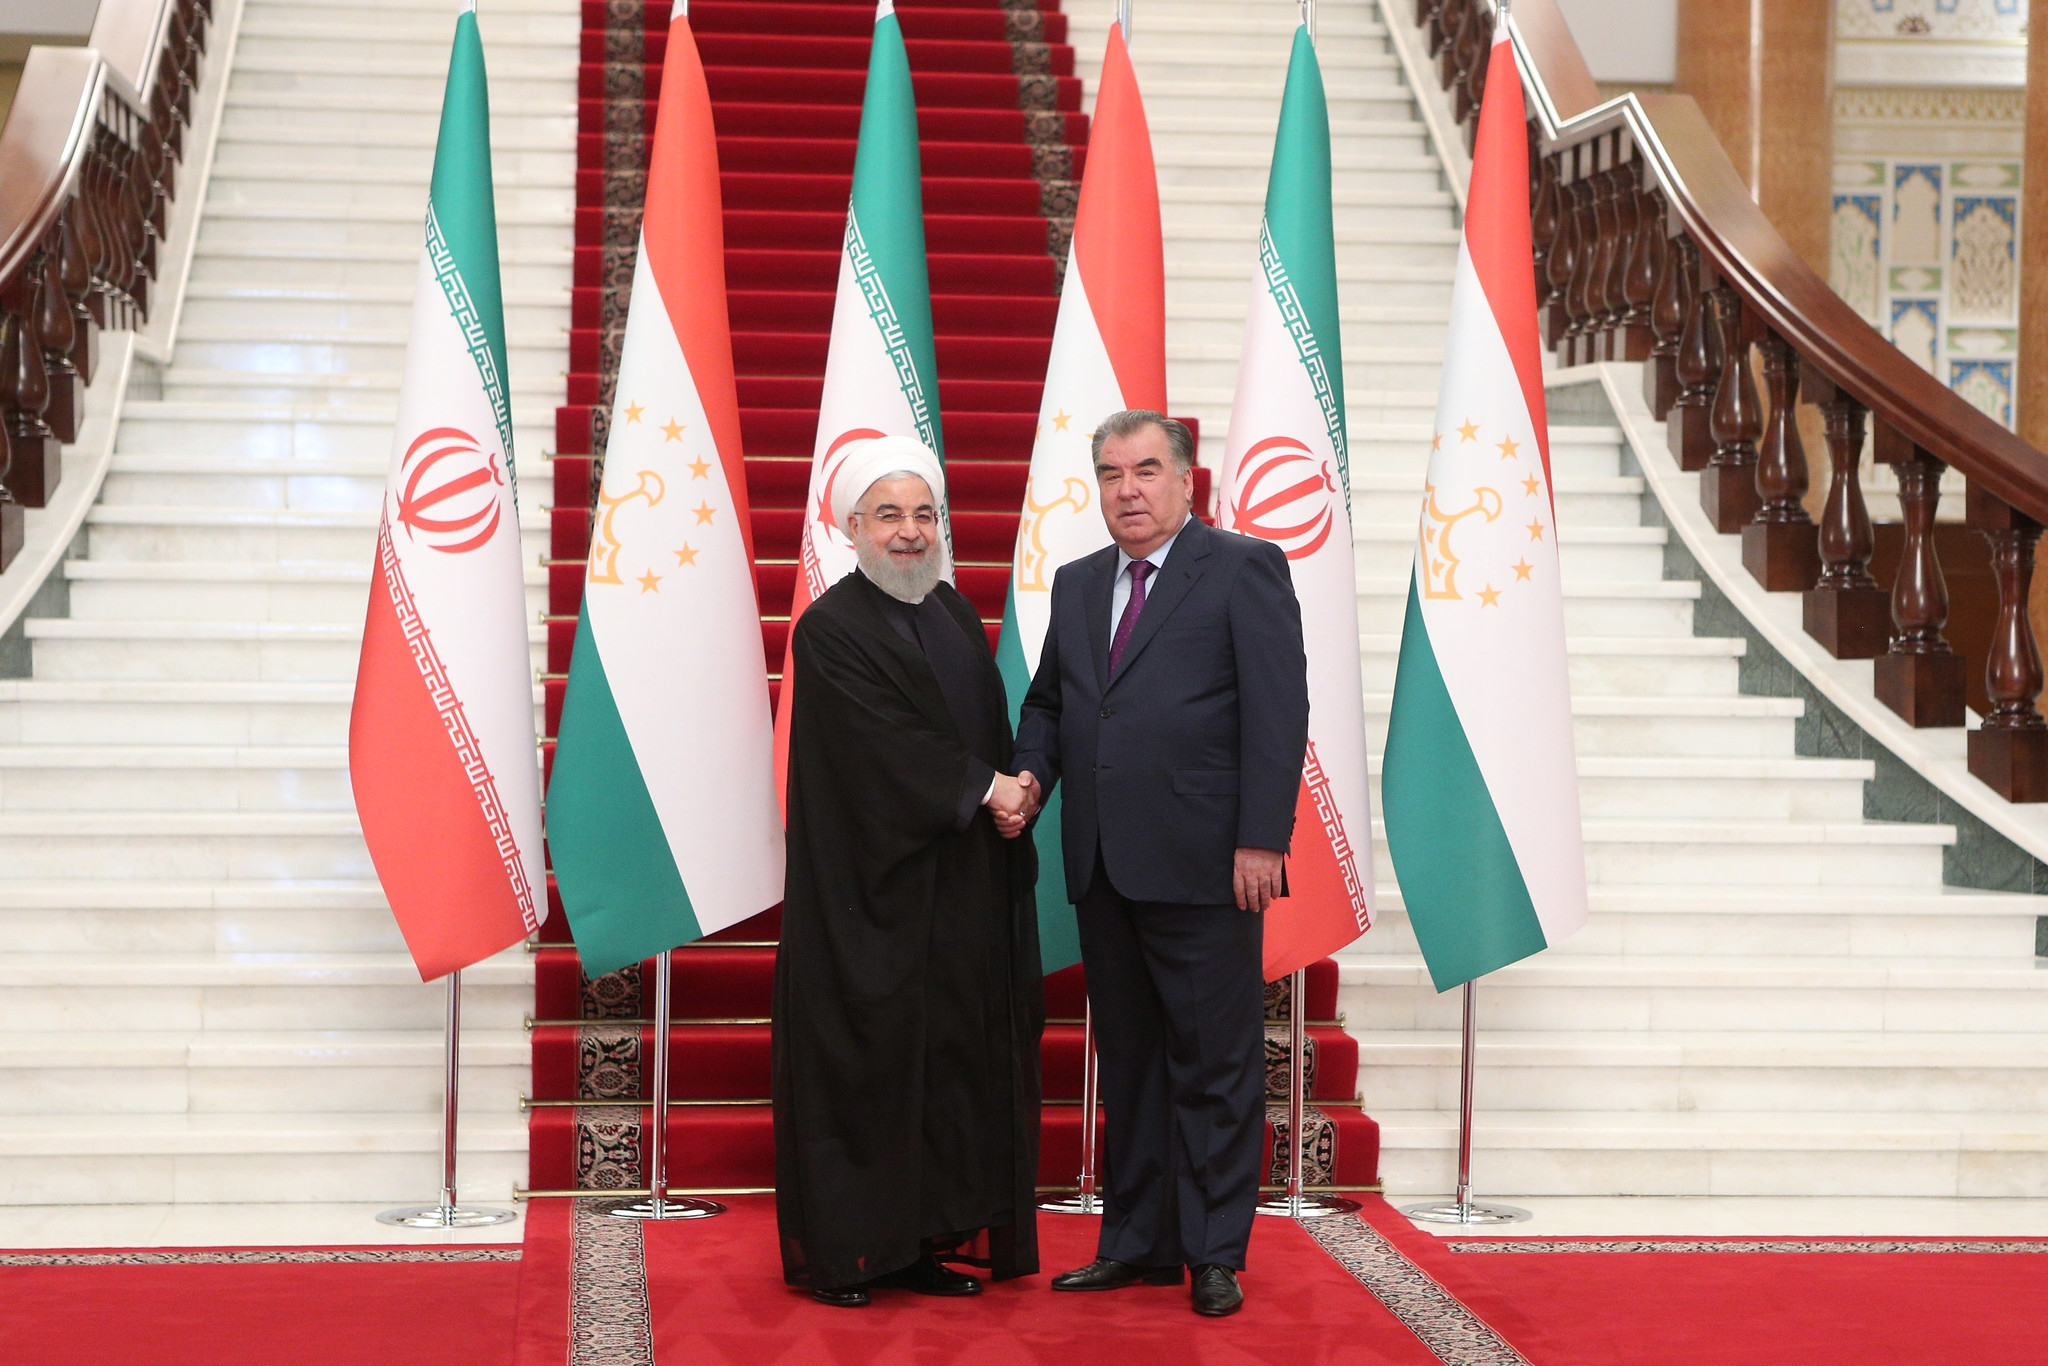 Iranian President Hassan Rouhani and Tajik leader Emomali Rahmon meeting in Dushanbe on June 15, 2019. (Photo: Tajik presidential administration)